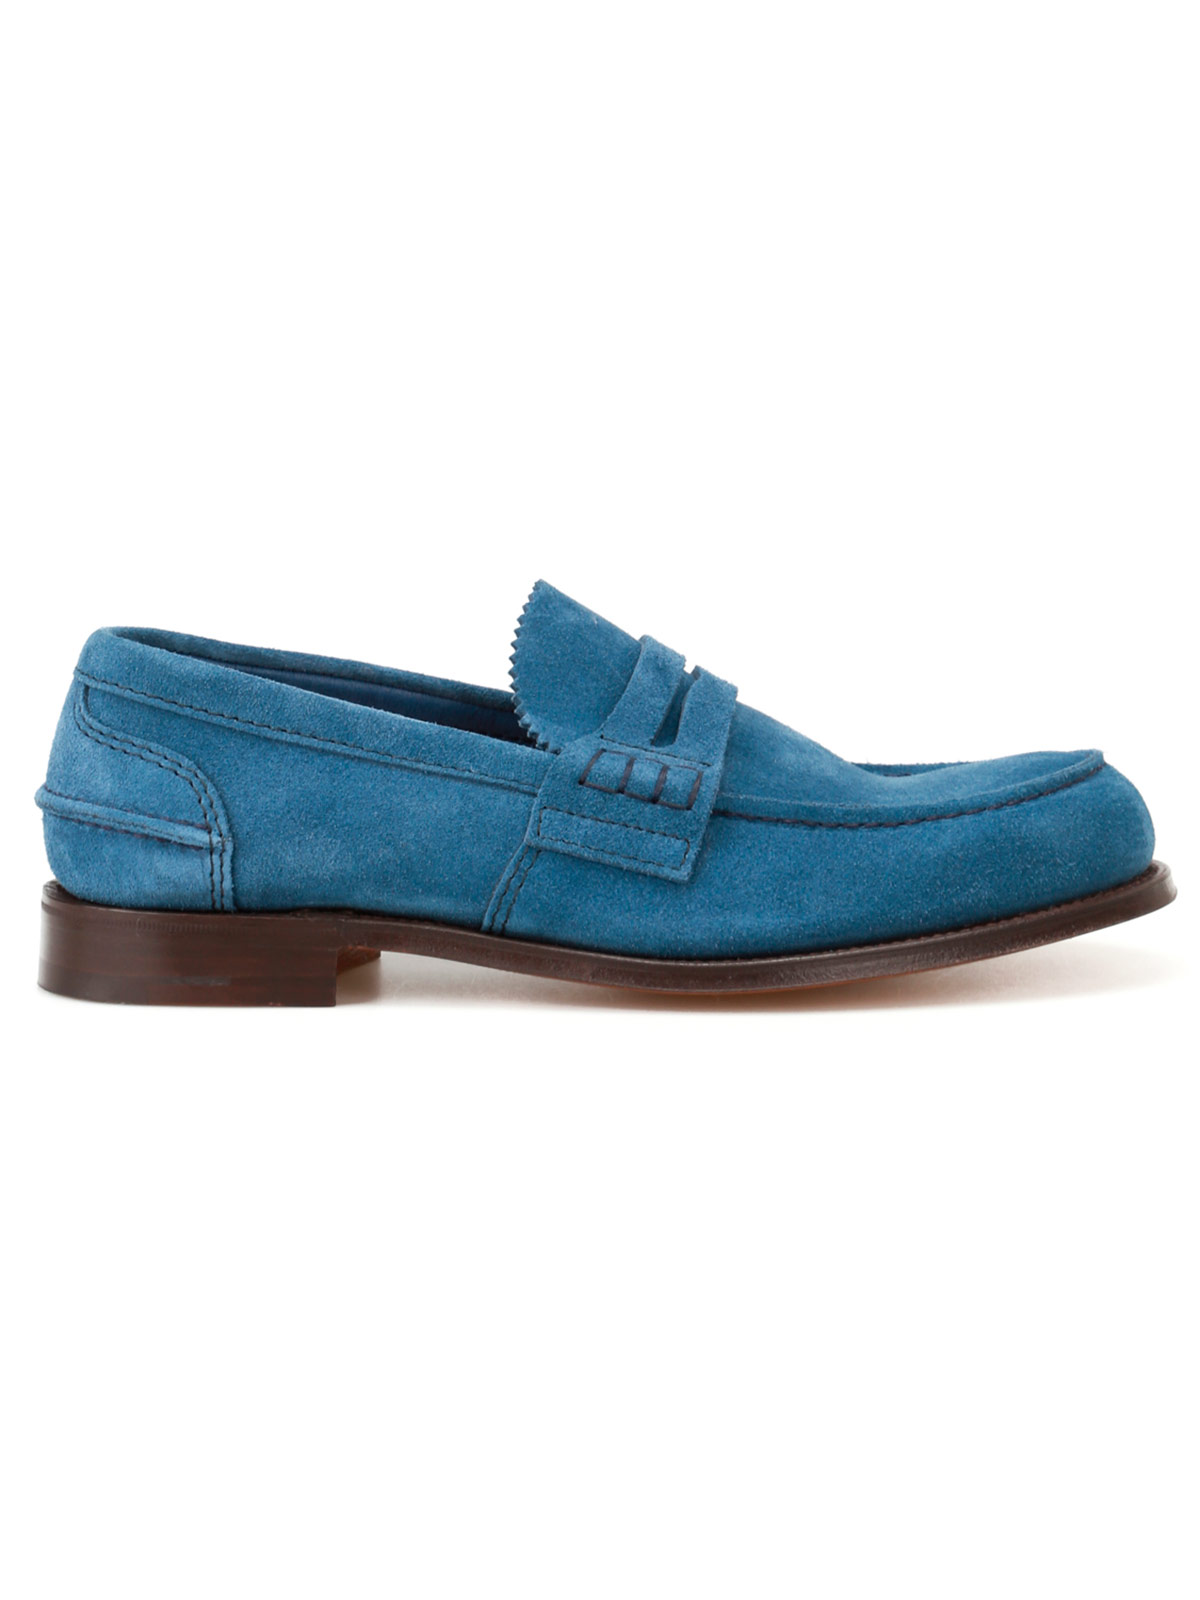 Picture of CHURCH'S | Men's Pembrey Loafers